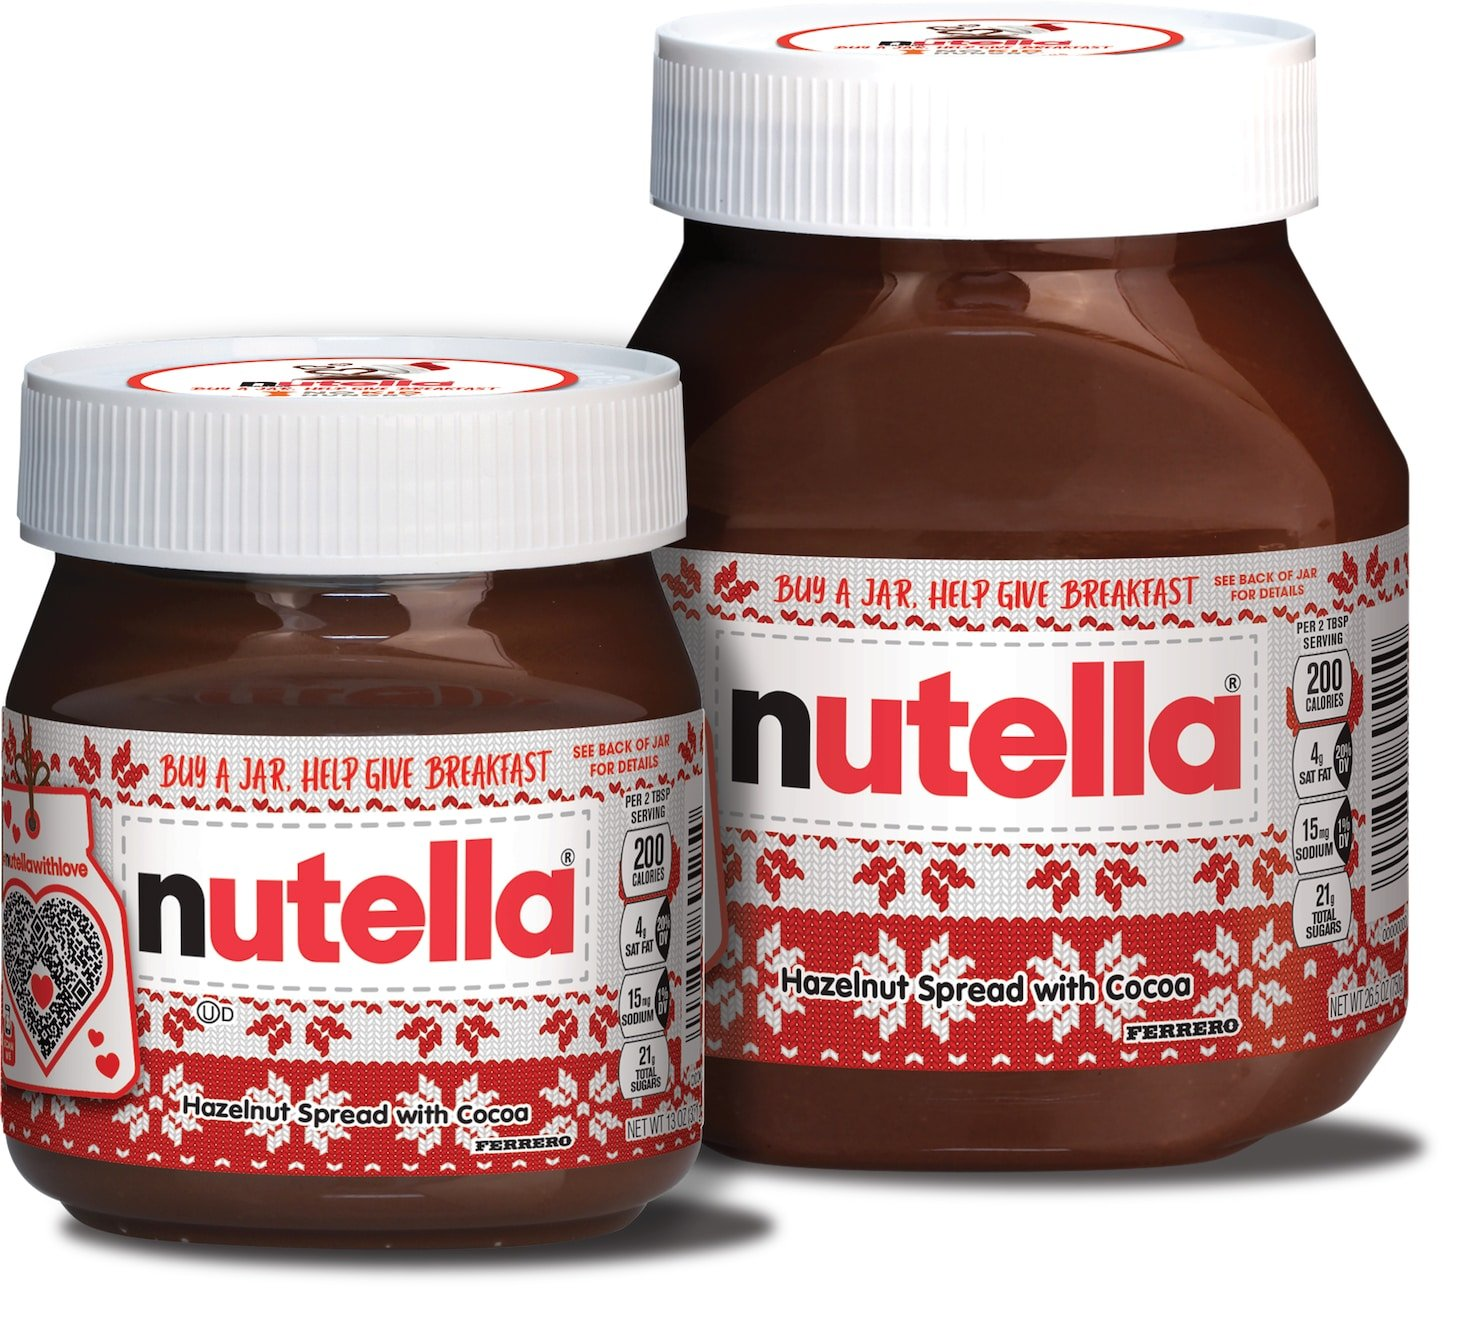 Nutella's DIY Holiday Breakfast Kit includes everything you need to make gingerbread pancakes 13